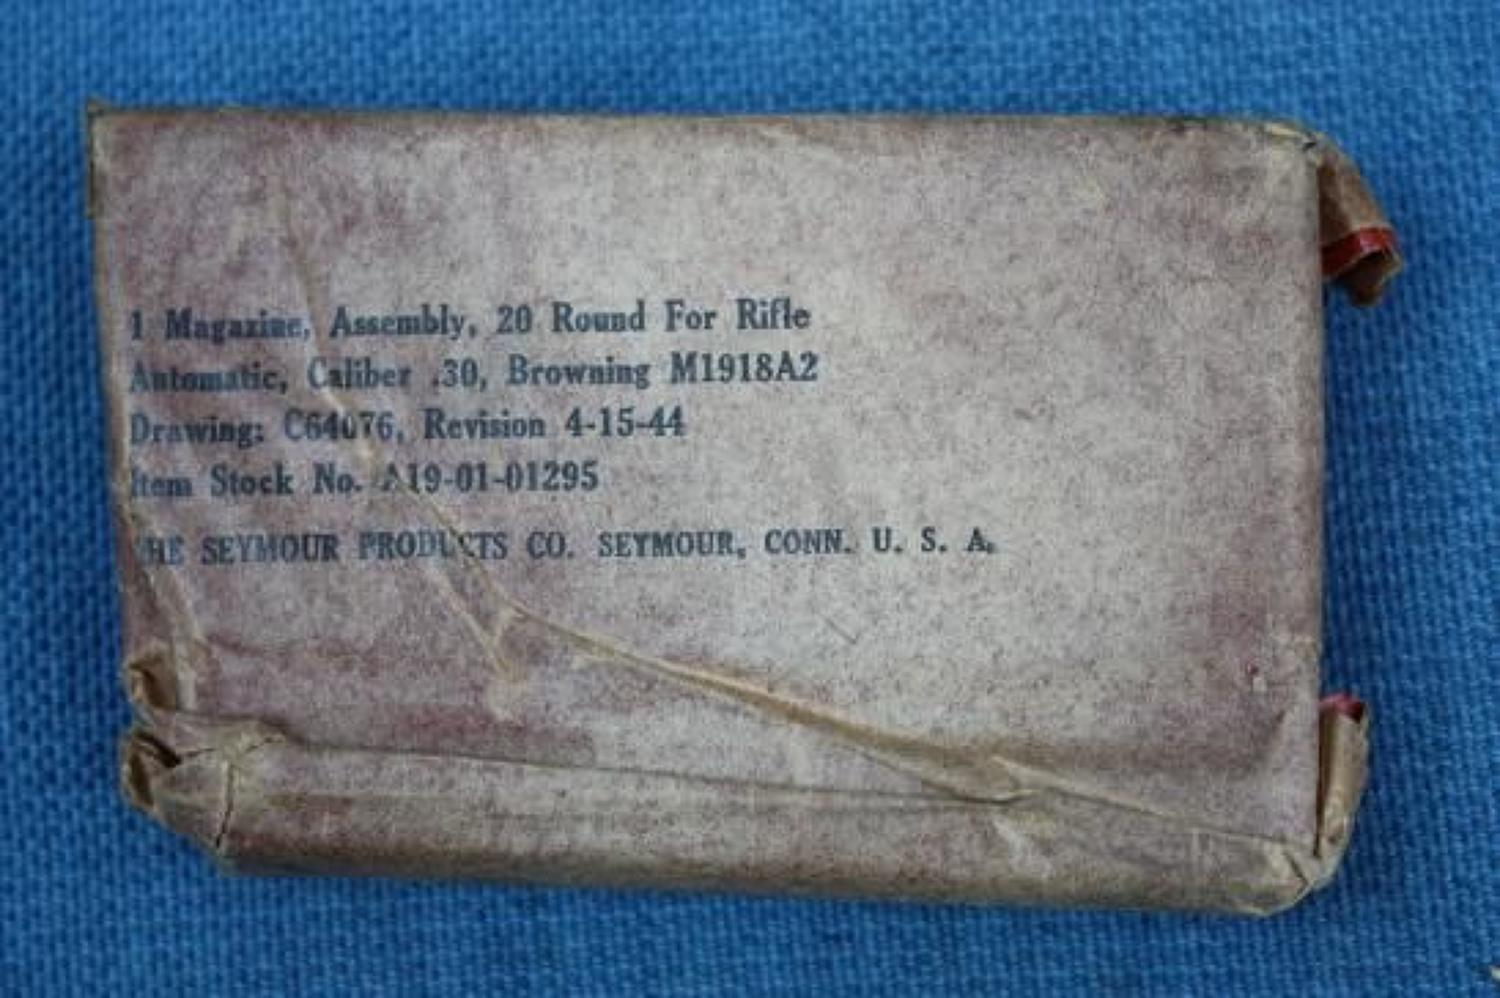 WW2 US Browning Automatic Rifle B.A.R. Magazine in original wrapping